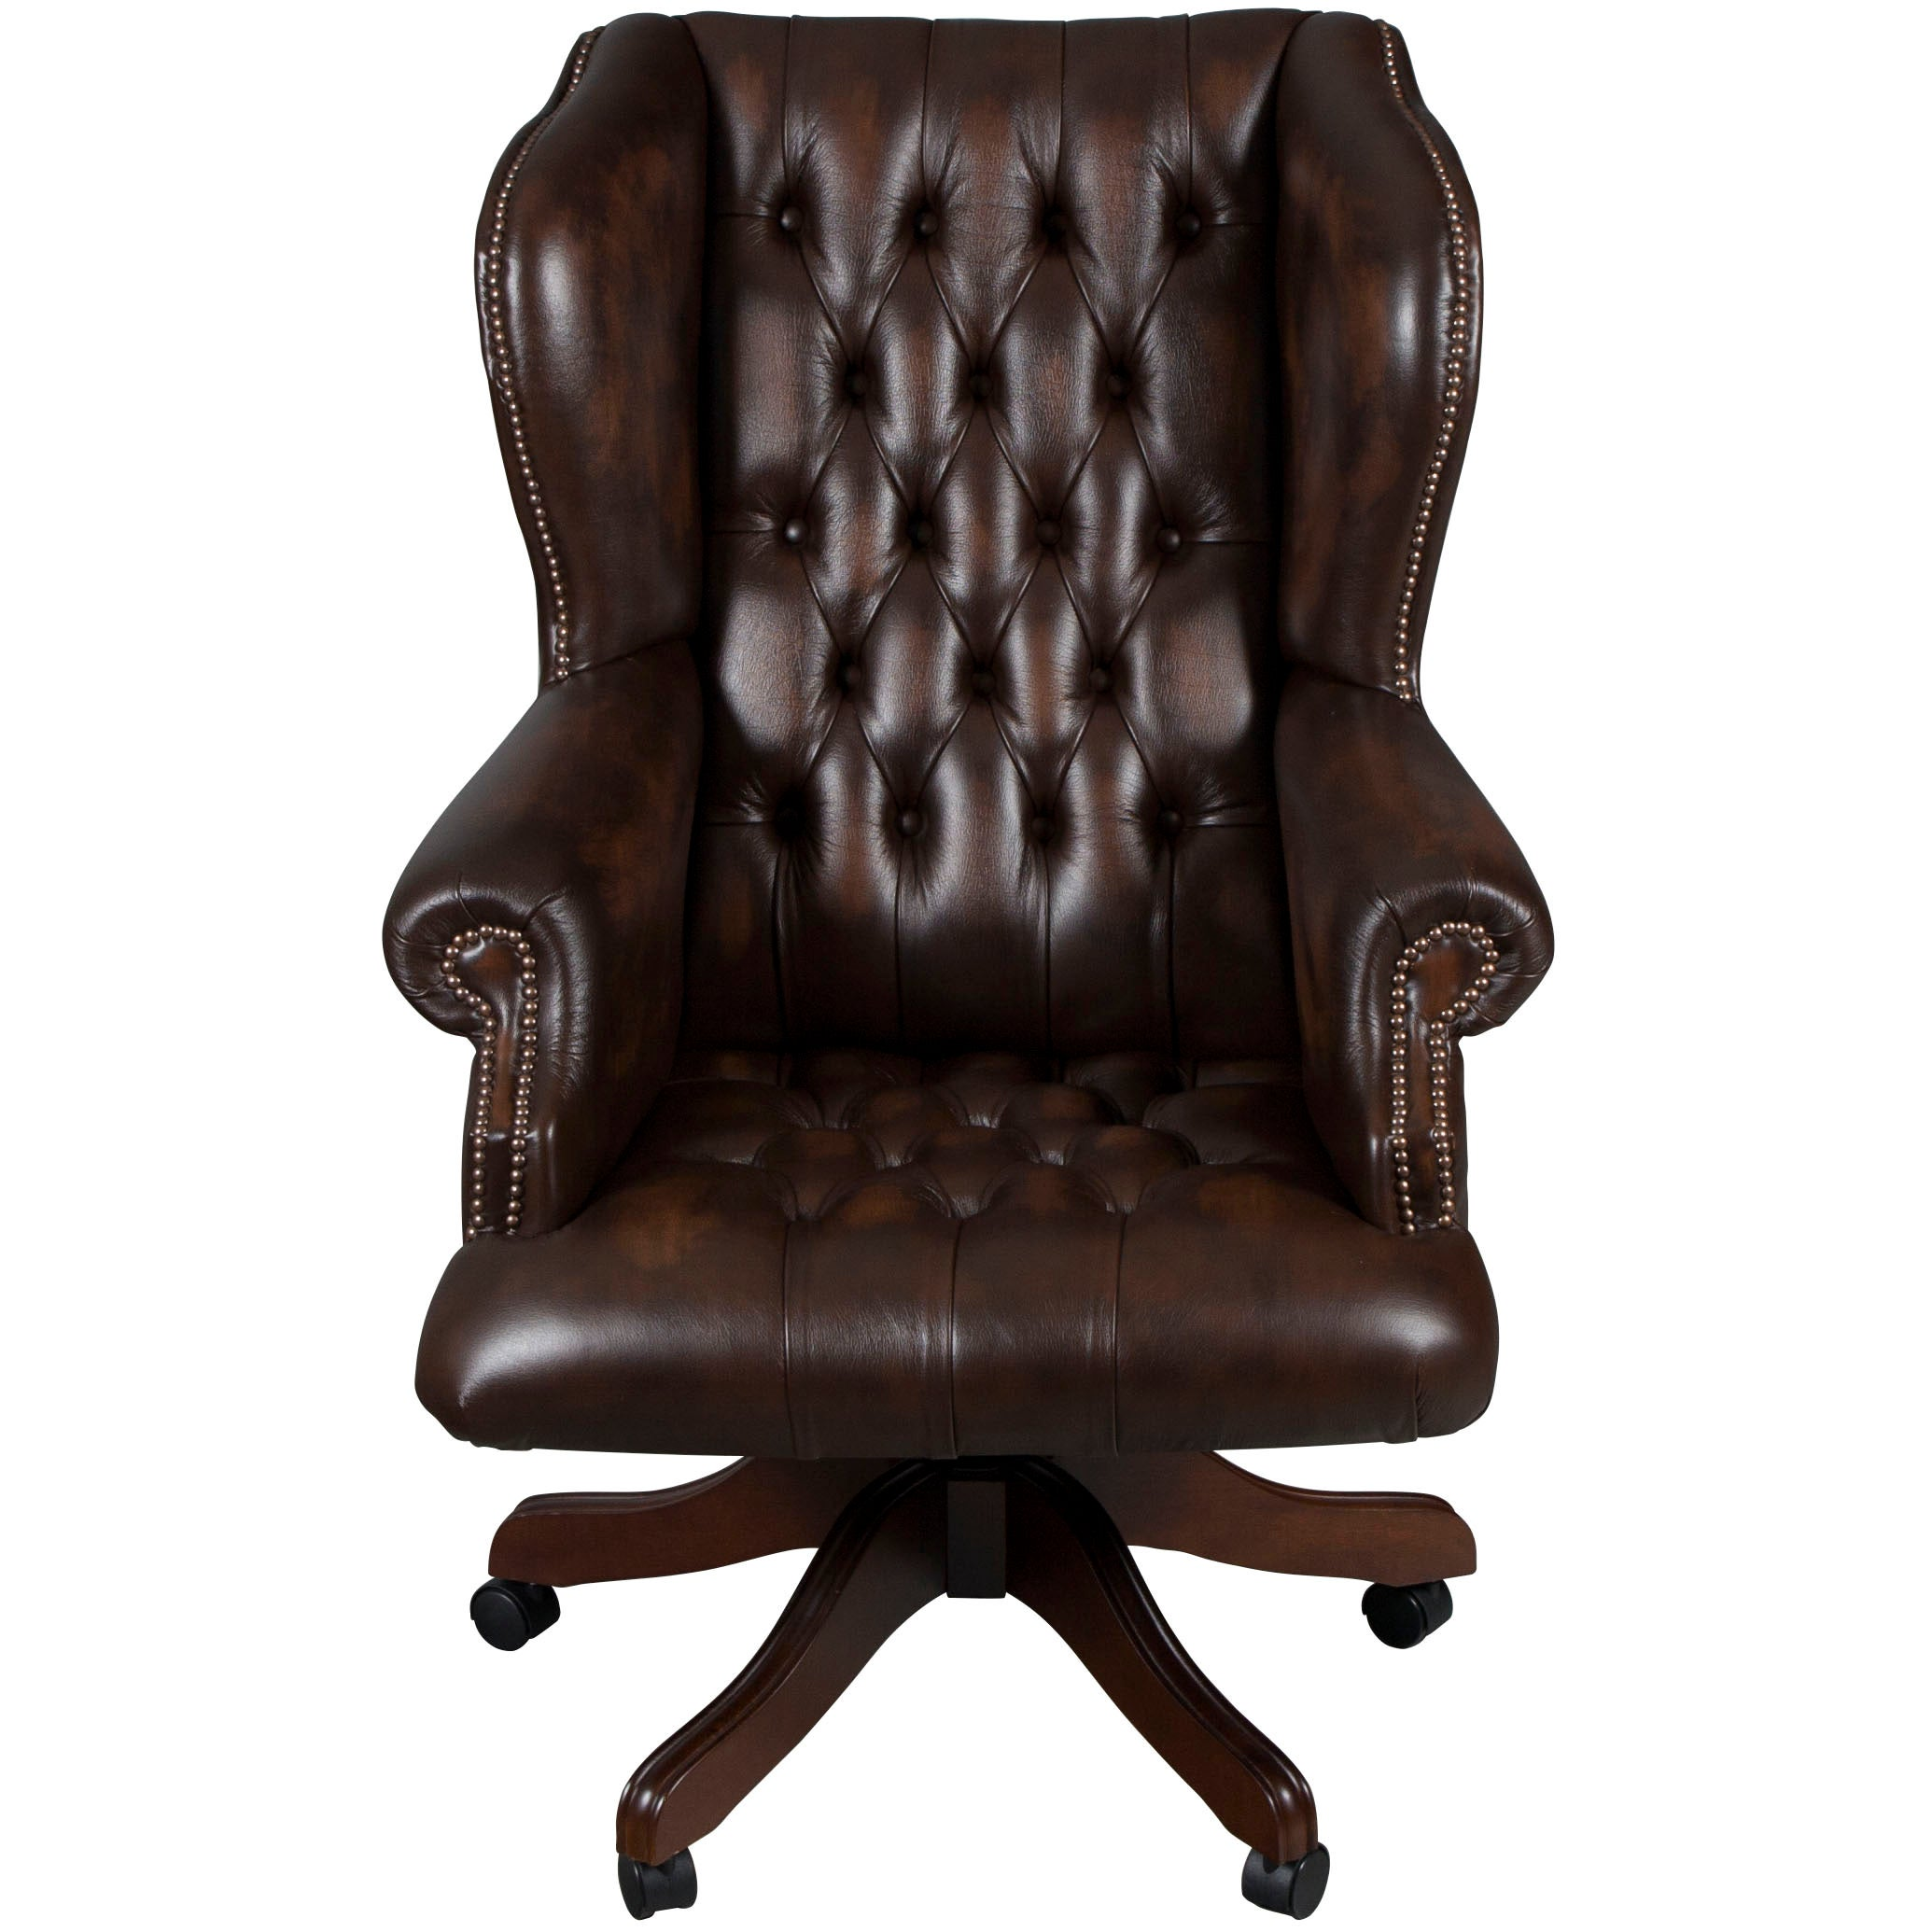 Tufted Leather Office Chair Large Tufted Brown Leather Desk Chair